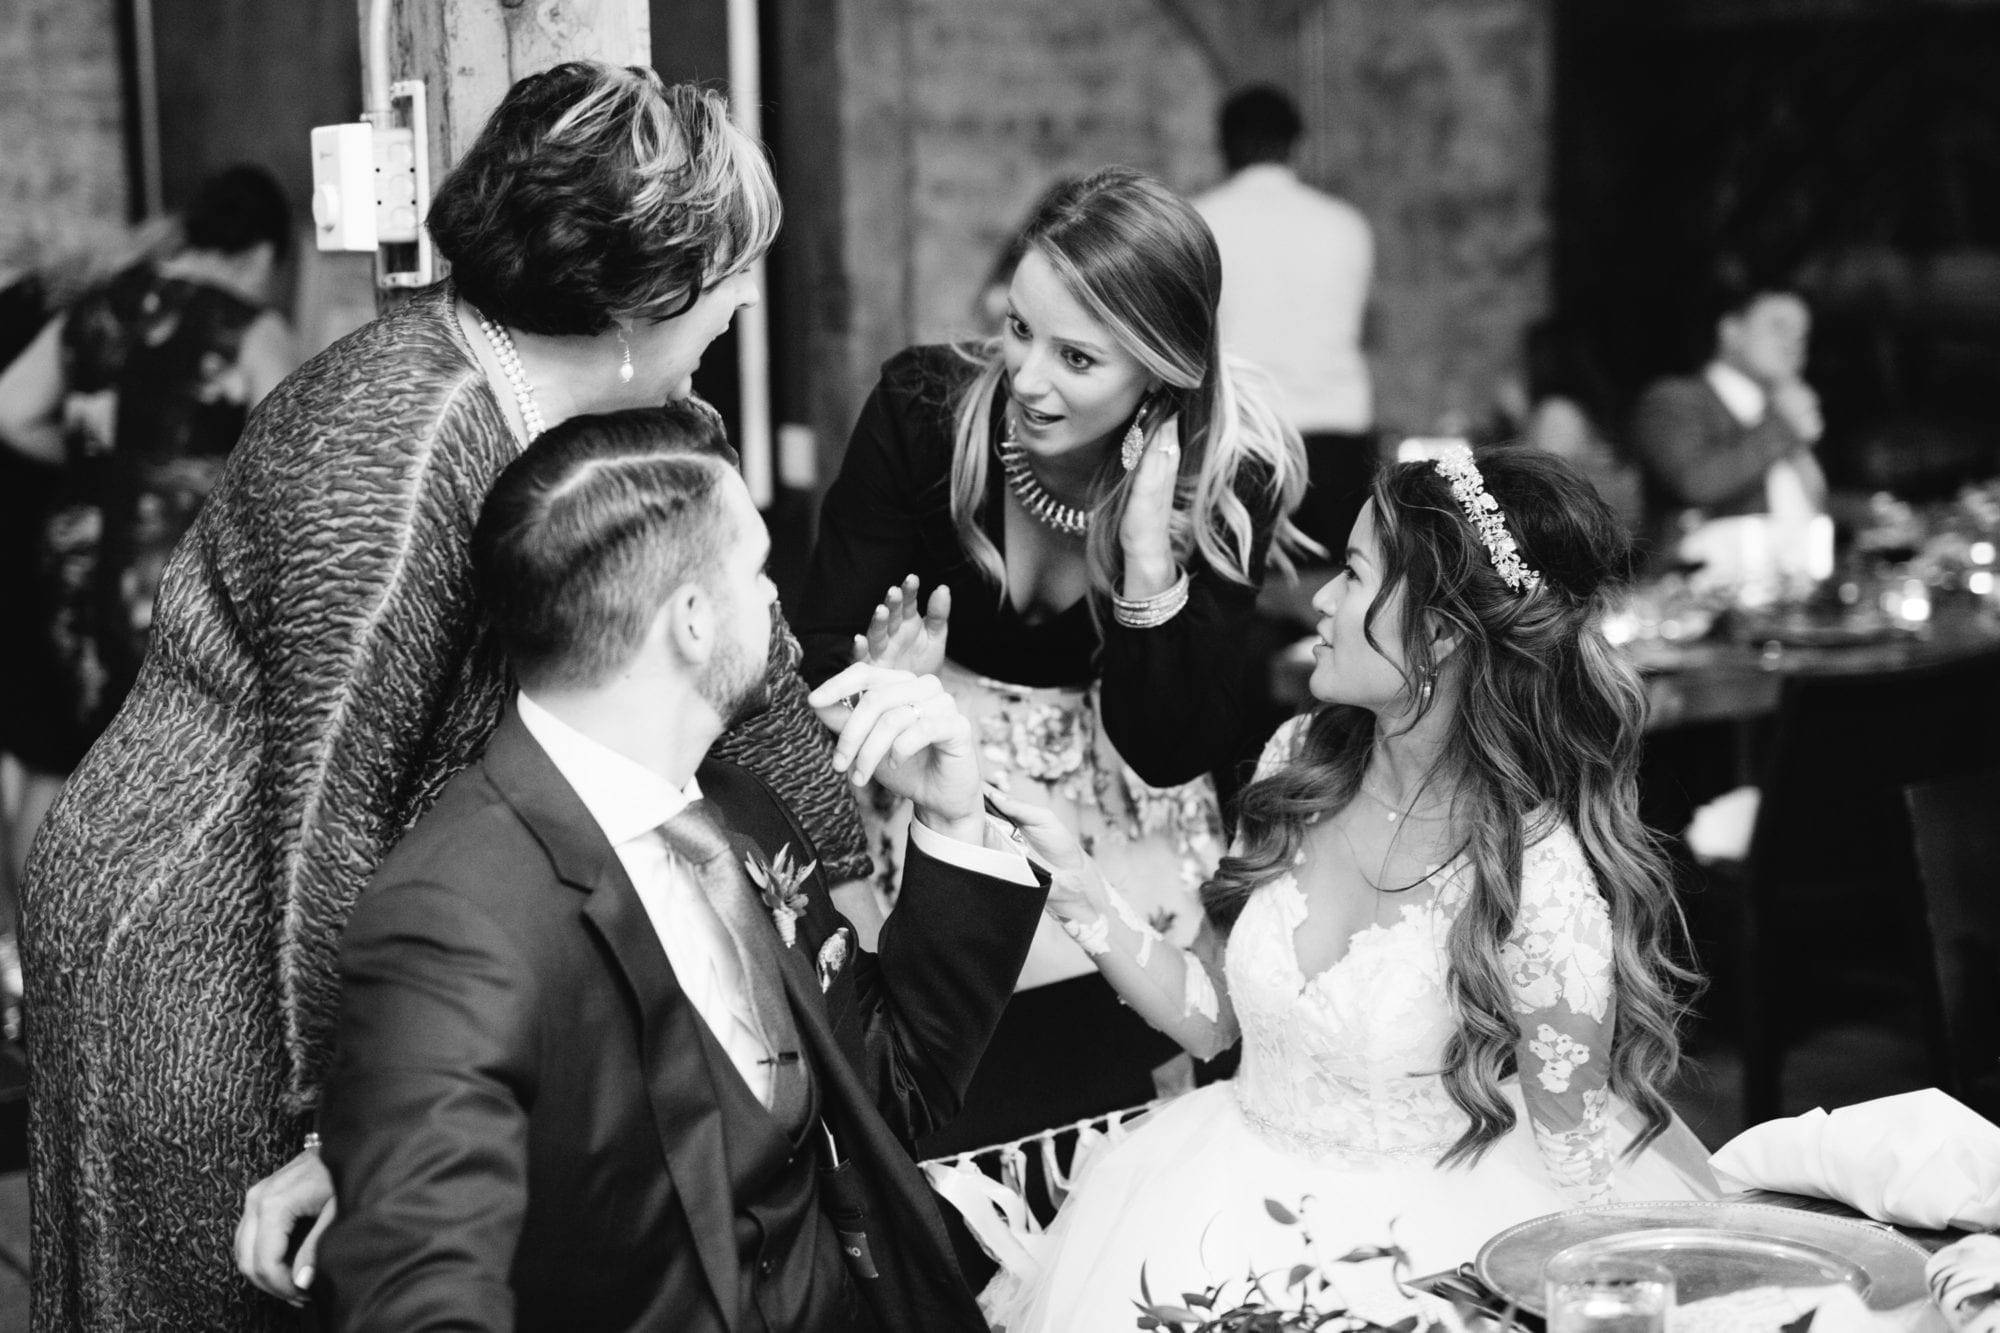 Candid Black and White Toronto Wedding Zsuzsi Pal Photography